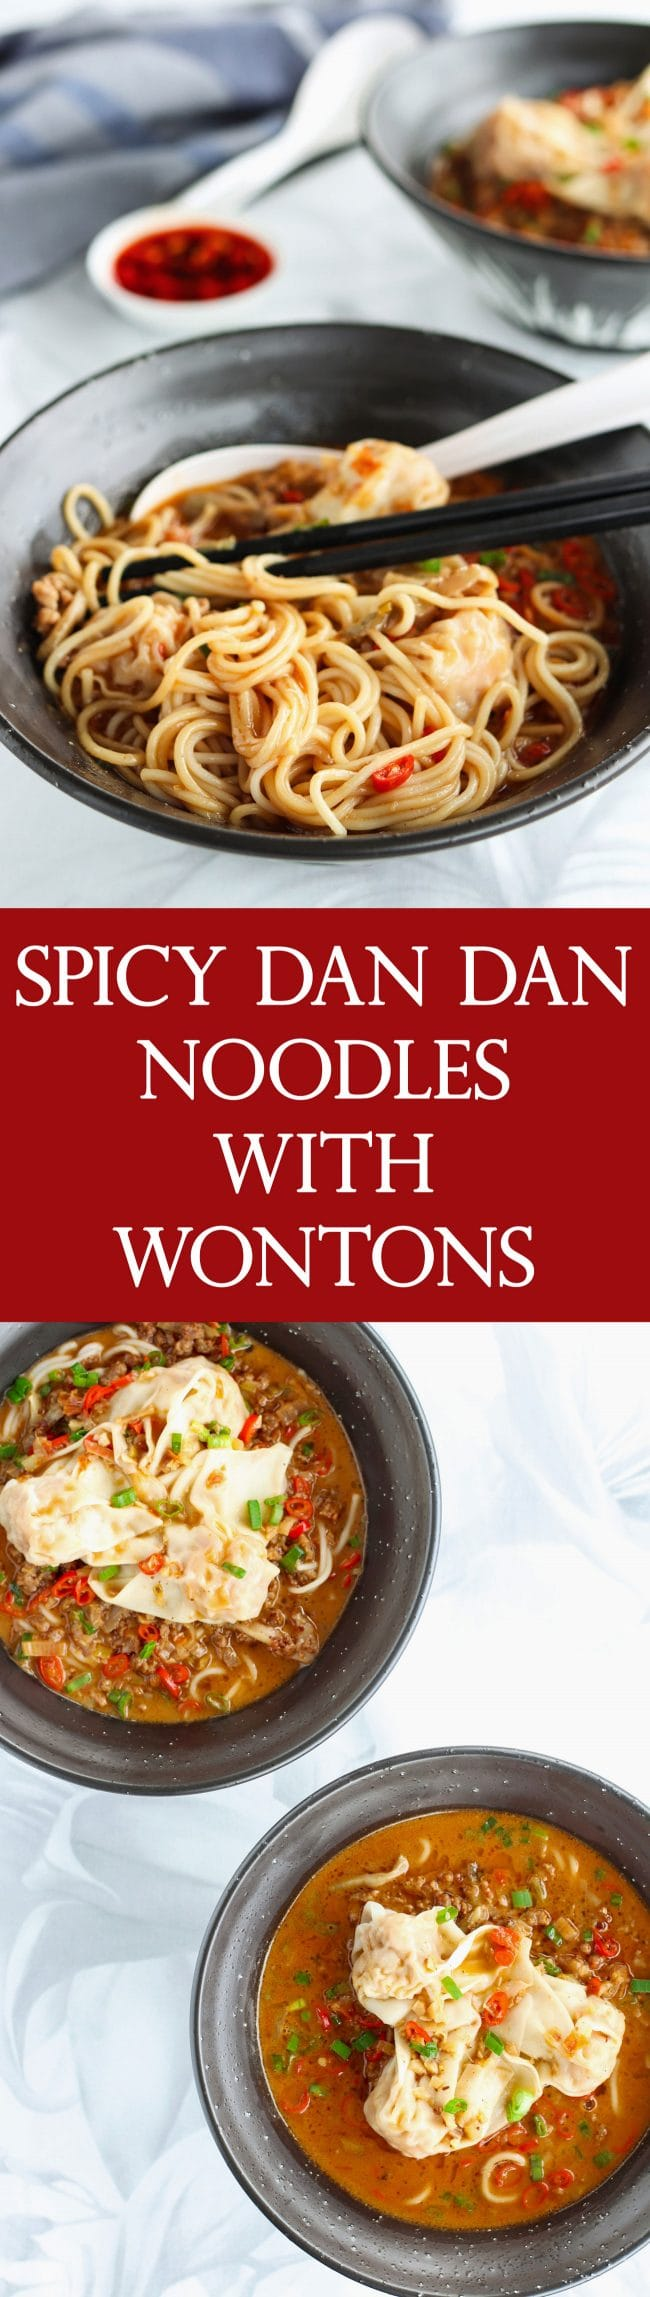 Long Pin - Photo 1: Two diagonally placed black bowls of Spicy Dan Dan Noodles with Wontons garnished with spring onion greens, and on top of a grey and white flower patterned napkin. Blue napkin to the side as well small dipping plate with peanuts in Chinese chill oil with flakes. White Asian soup spoon inside bowl and black chopsticks Two diagonally placed black bowls of Spicy Dan Dan Noodles with Wontons garnished with spring onion greens, and on top of a grey and white flower patterned napkin. Blue napkin to the side as well small dipping plate with peanuts in Chinese chill oil with flakes. White Asian soup spoon and black chopsticks resting inside bowl after tossing. Photo 2: Two diagonally placed black bowls of Spicy Dan Dan Noodles with Wontons with lots of soup, garnished with spring onion greens, and on top of a grey and white flower patterned napkin.